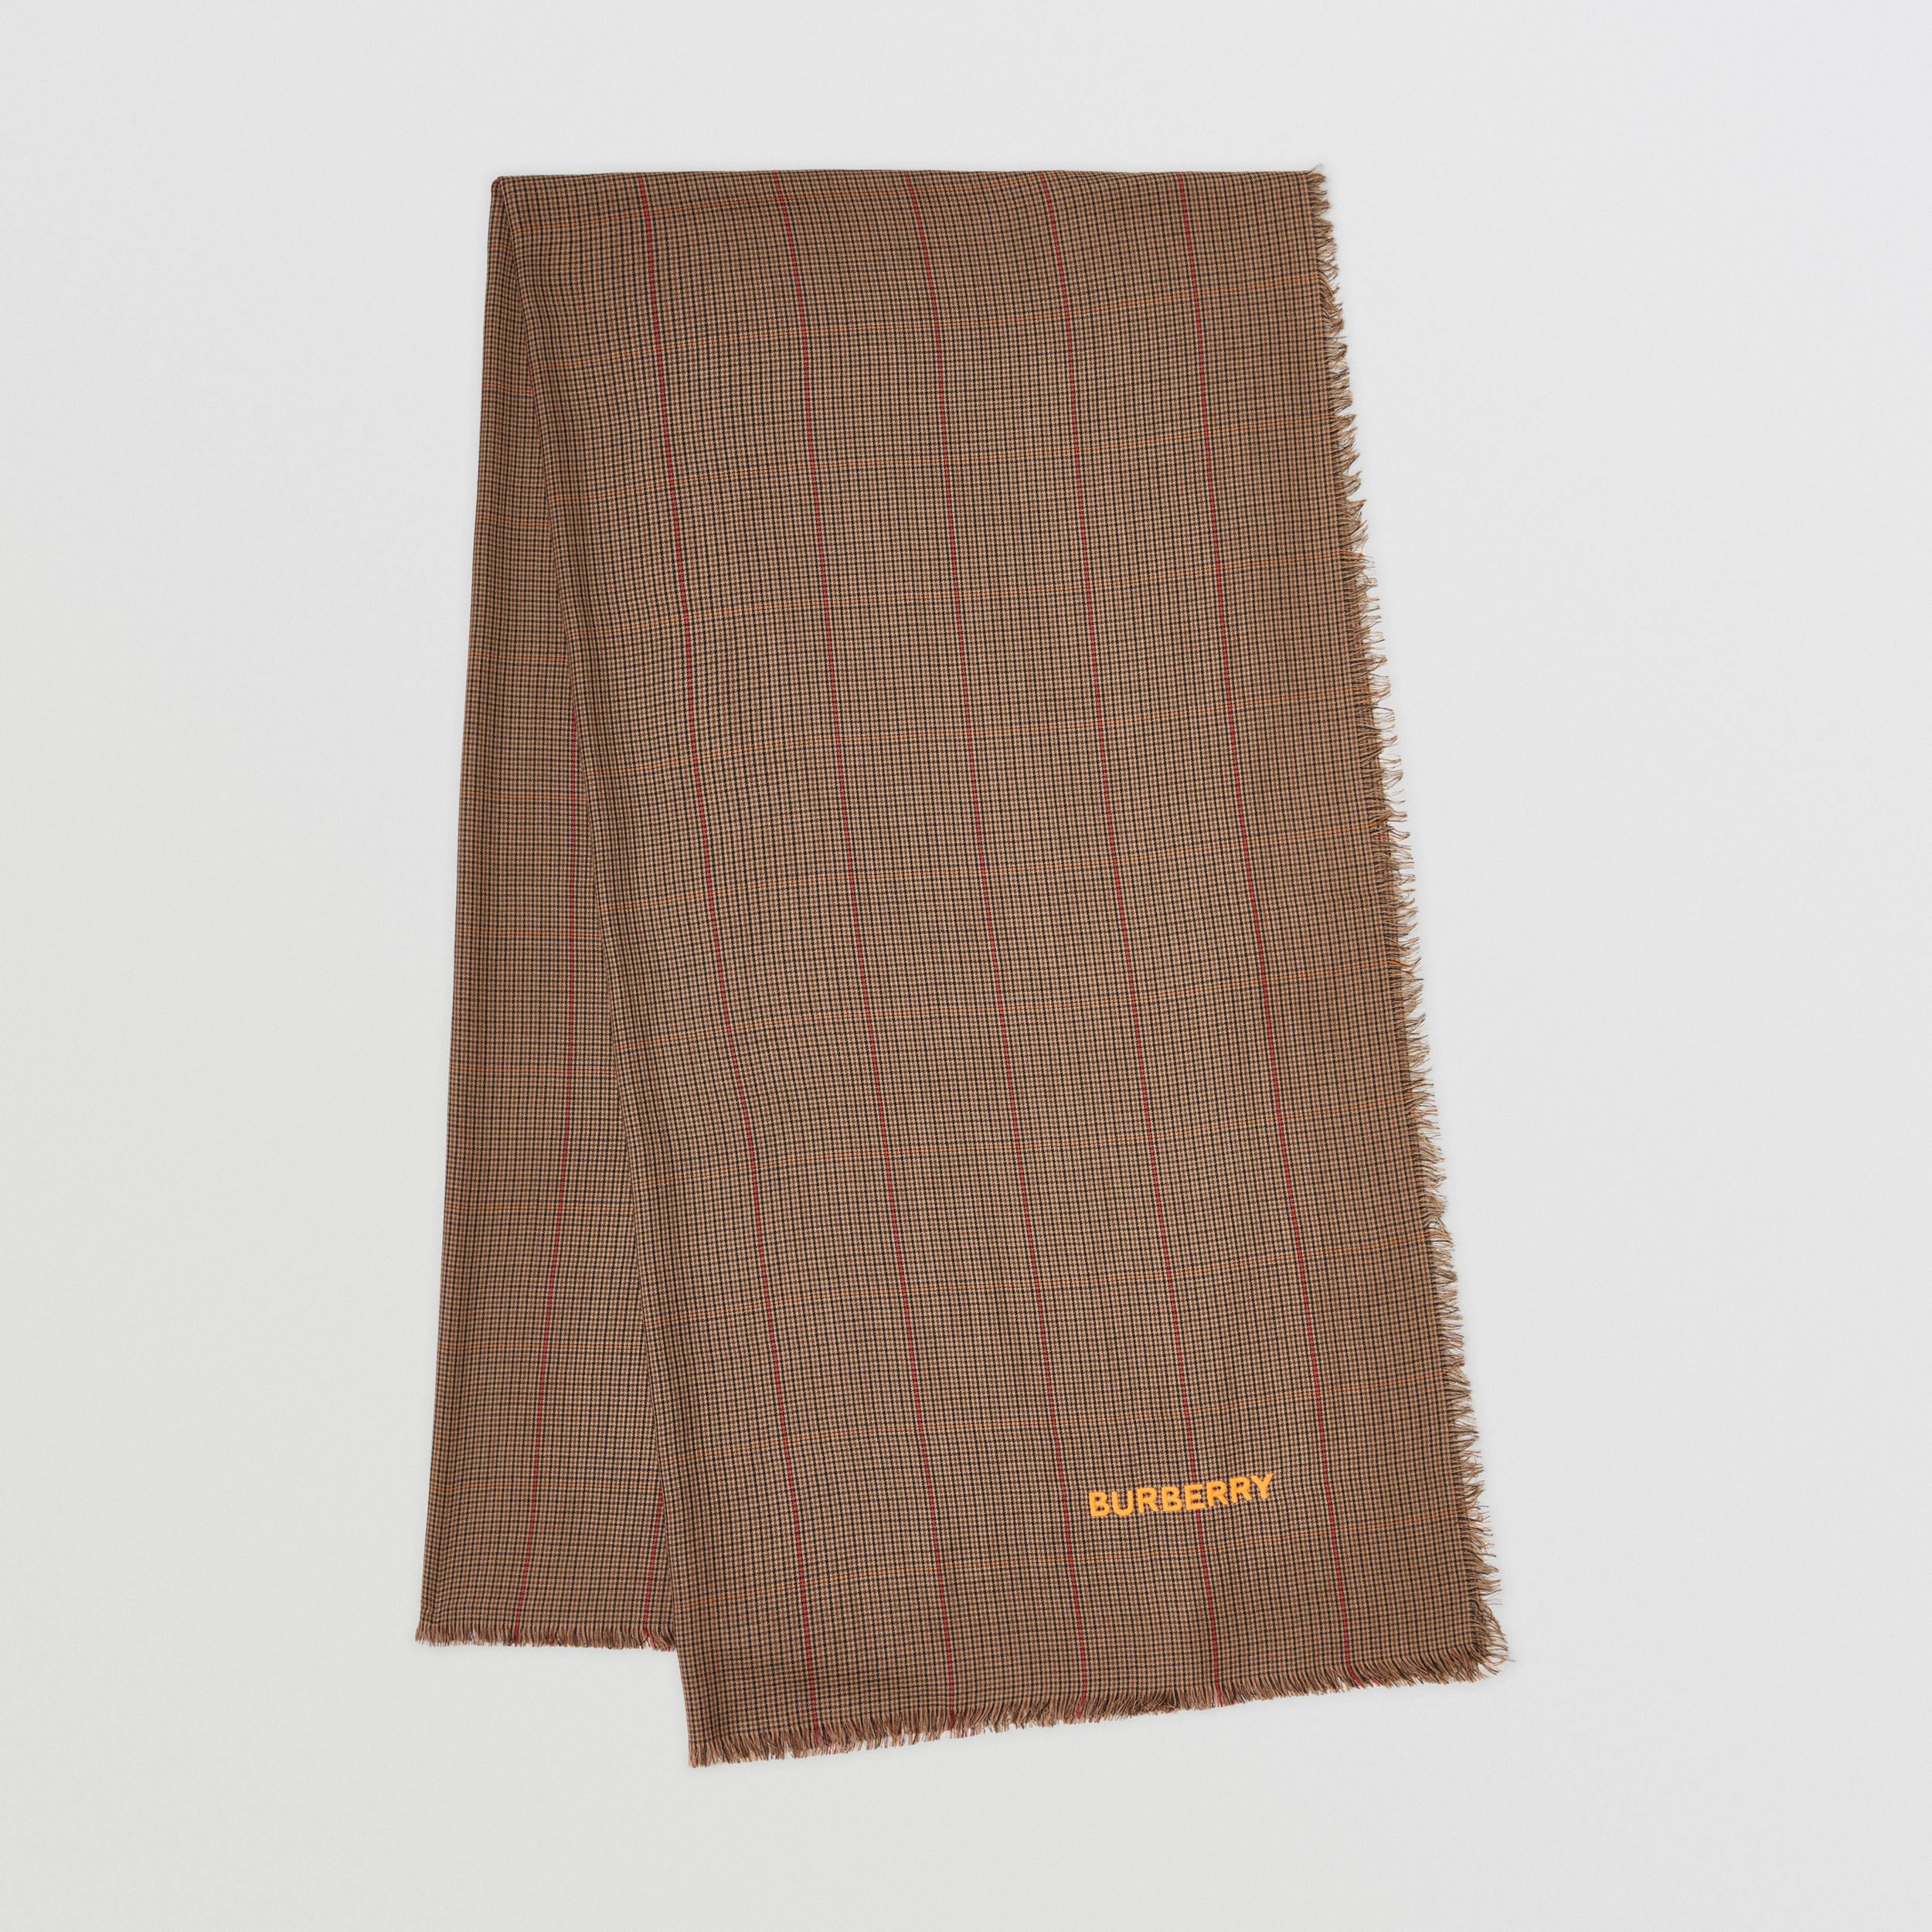 Horseferry Print Houndstooth Cashmere Scarf in Dark Mocha | Burberry - 1